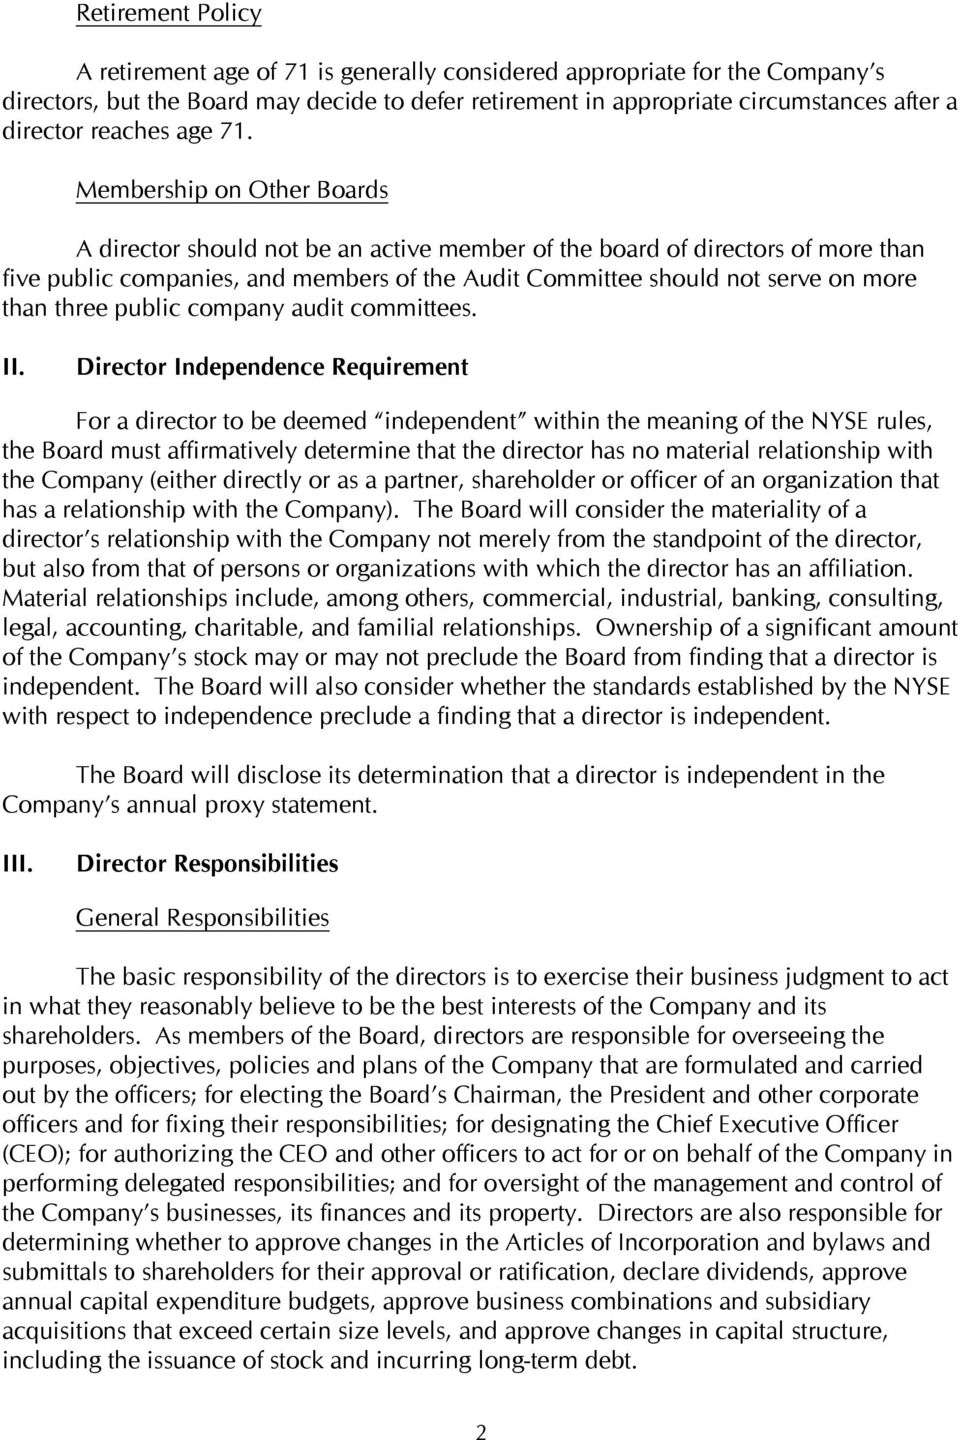 Membership on Other Boards A director should not be an active member of the board of directors of more than five public companies, and members of the Audit Committee should not serve on more than